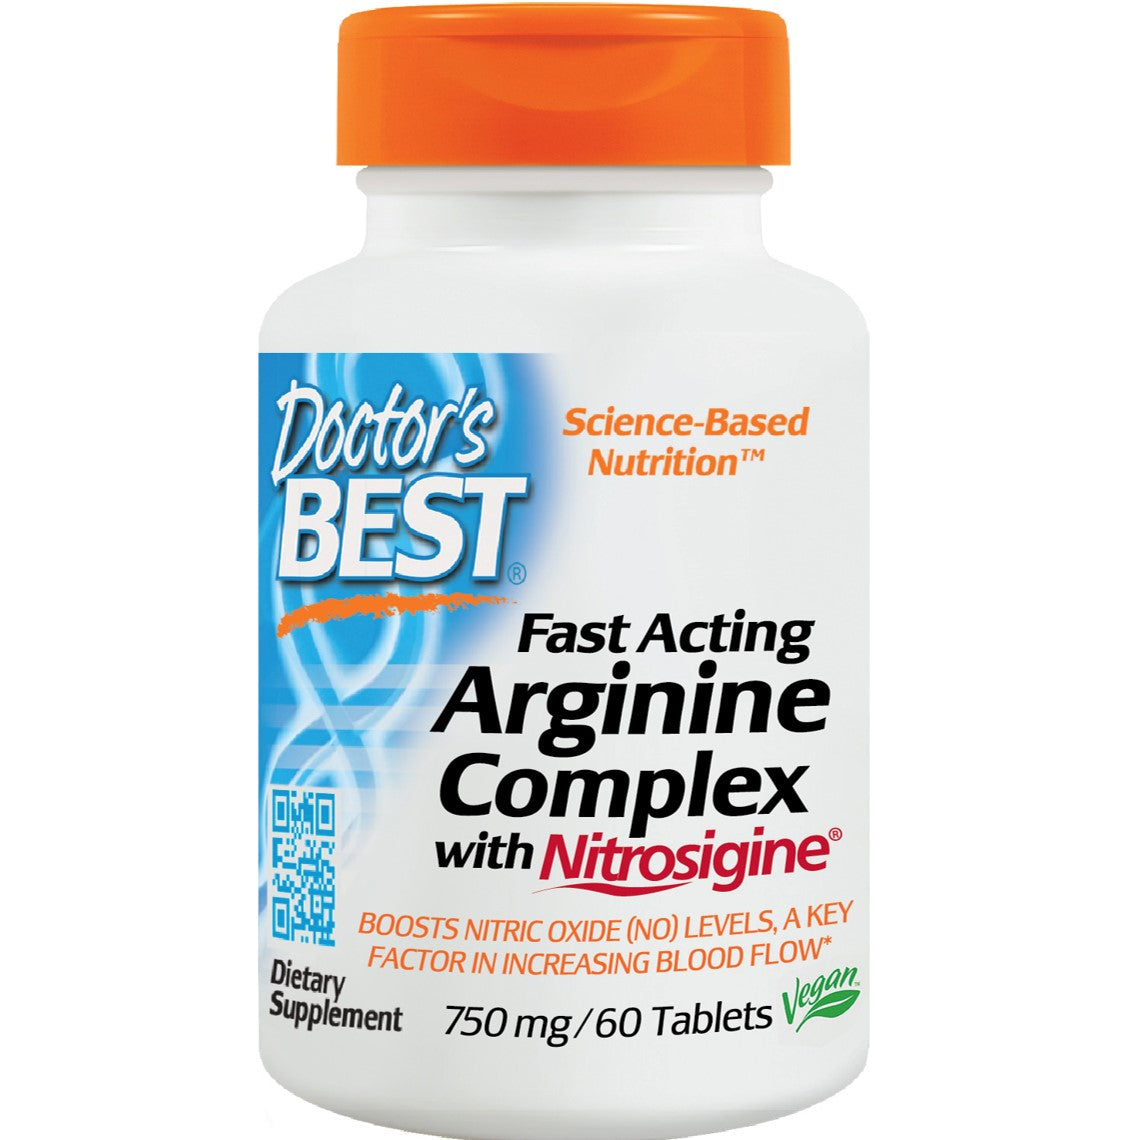 Doctor's Best Fast Acting Arginine Complex with Nitrosigine 750mg, 60 tabs-NaturesWisdom